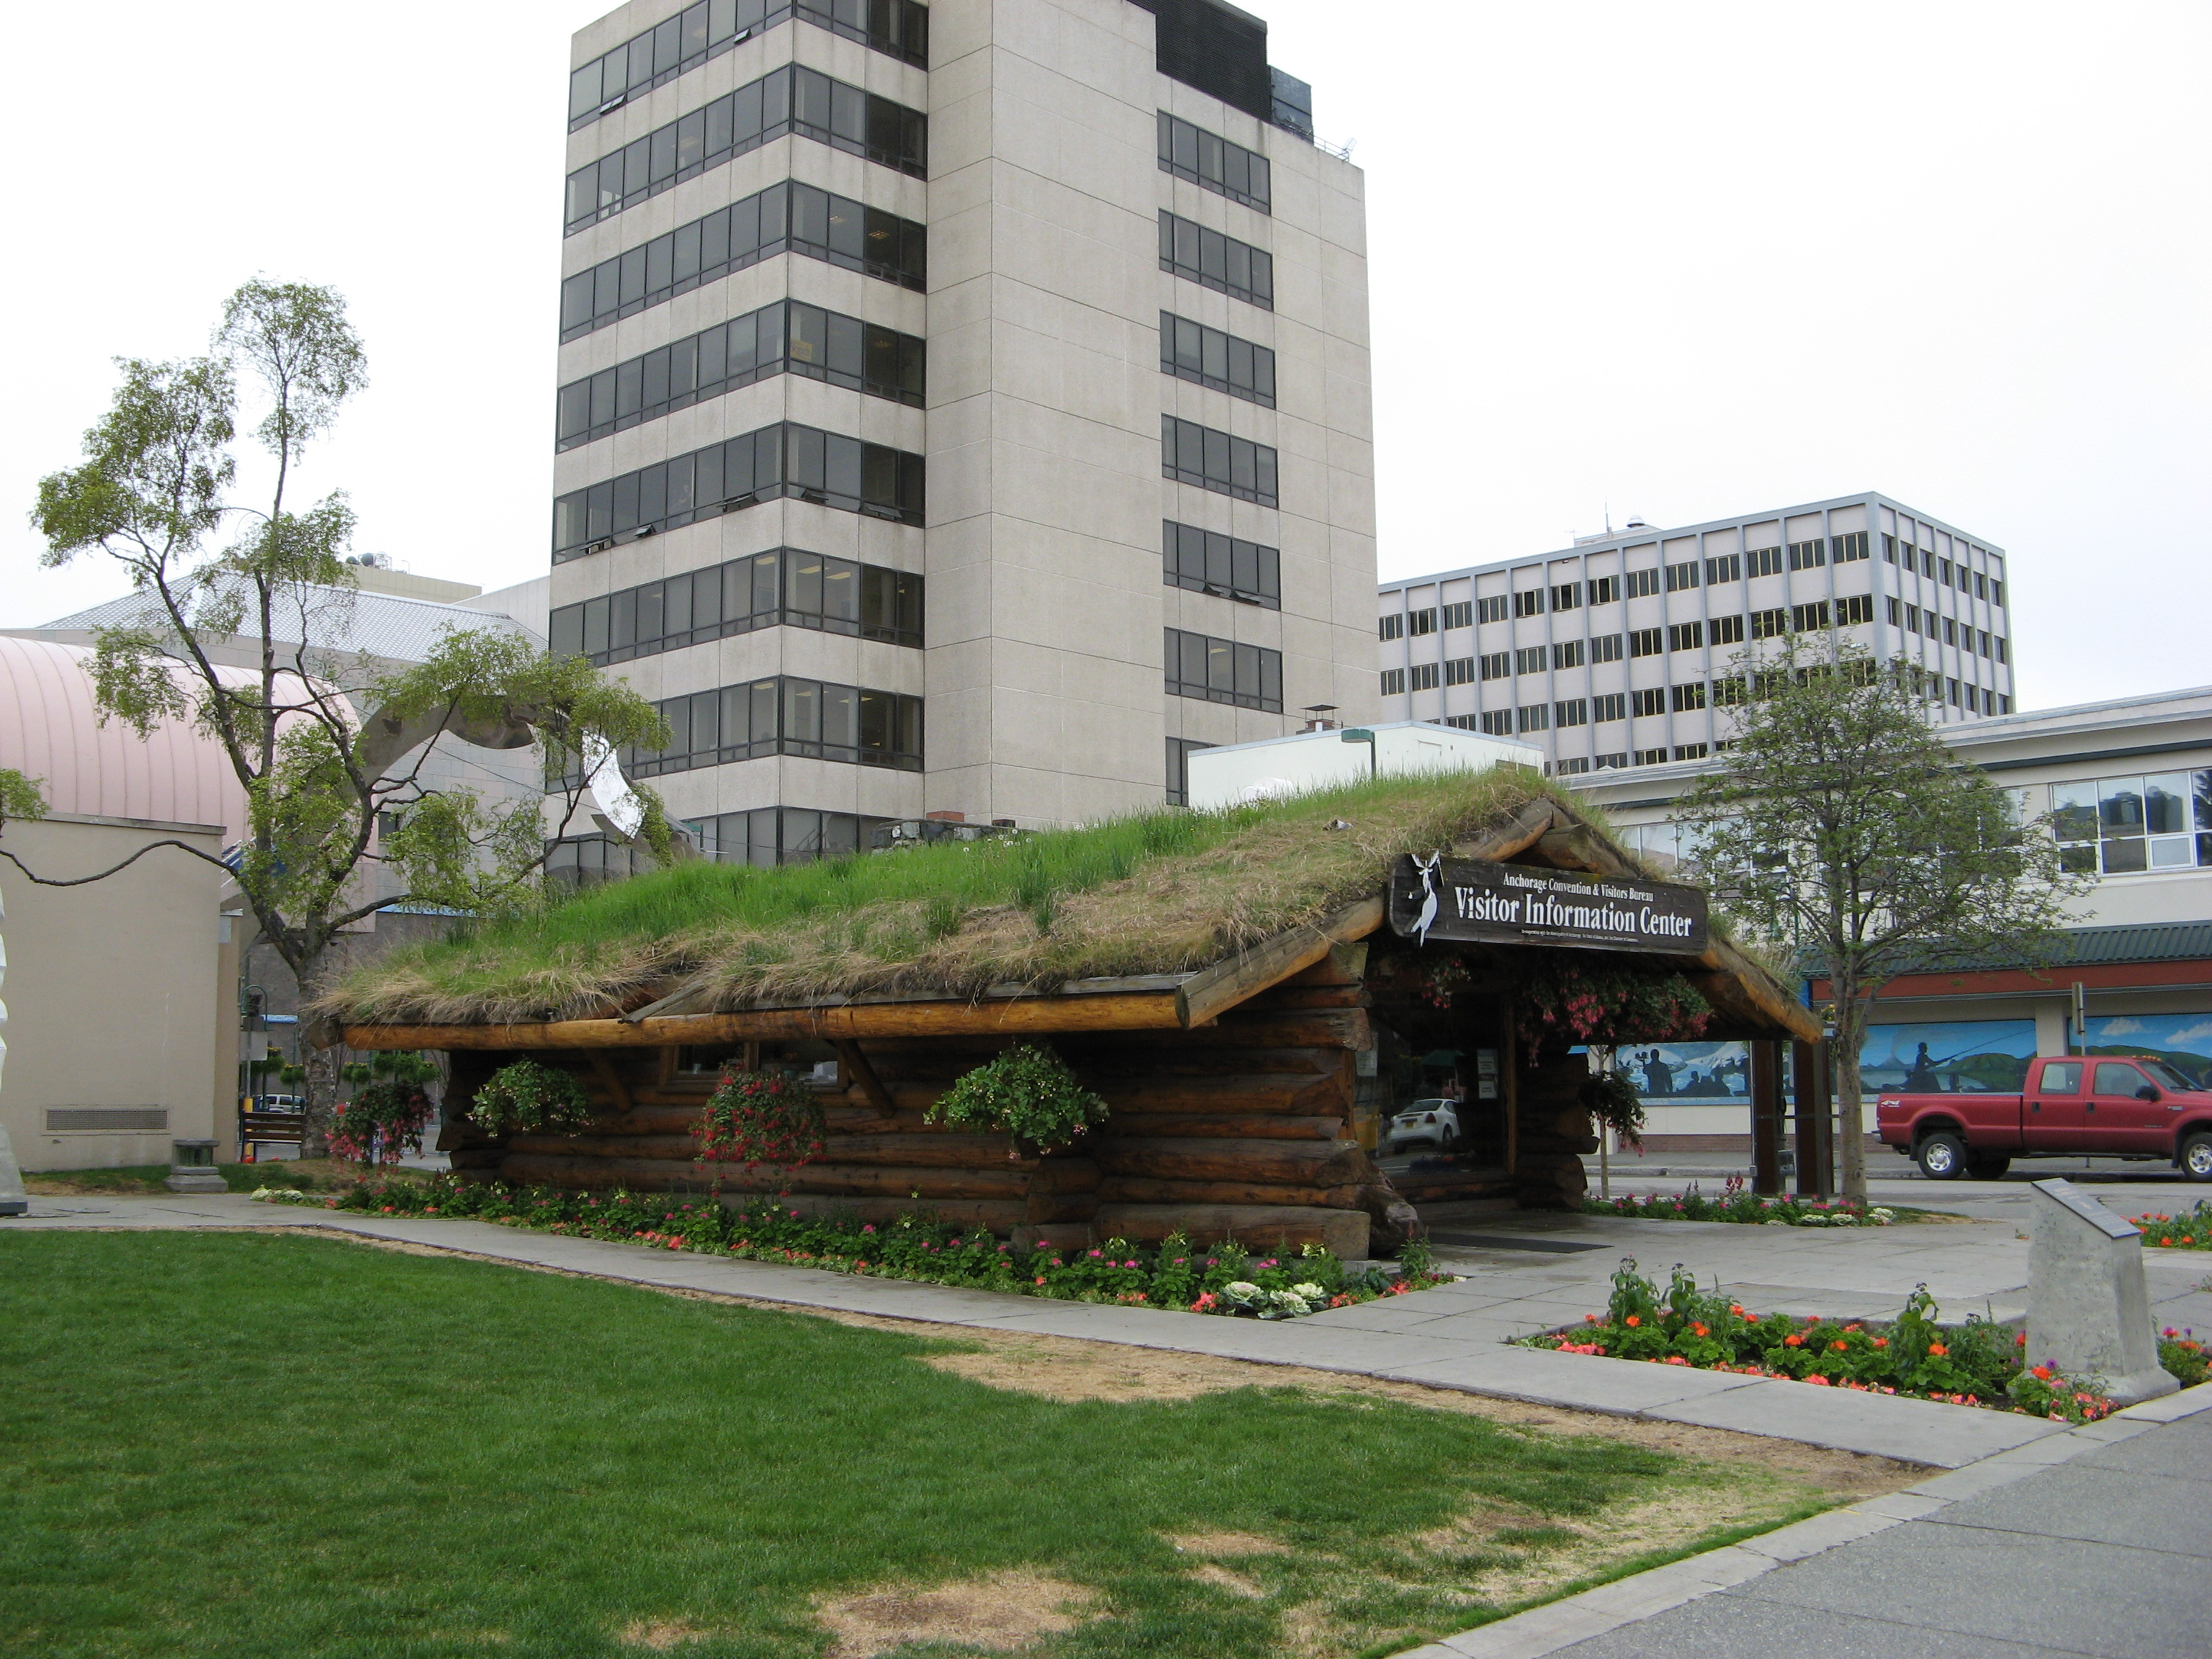 Anchorage, Alaska visitor's information center (grass roof).